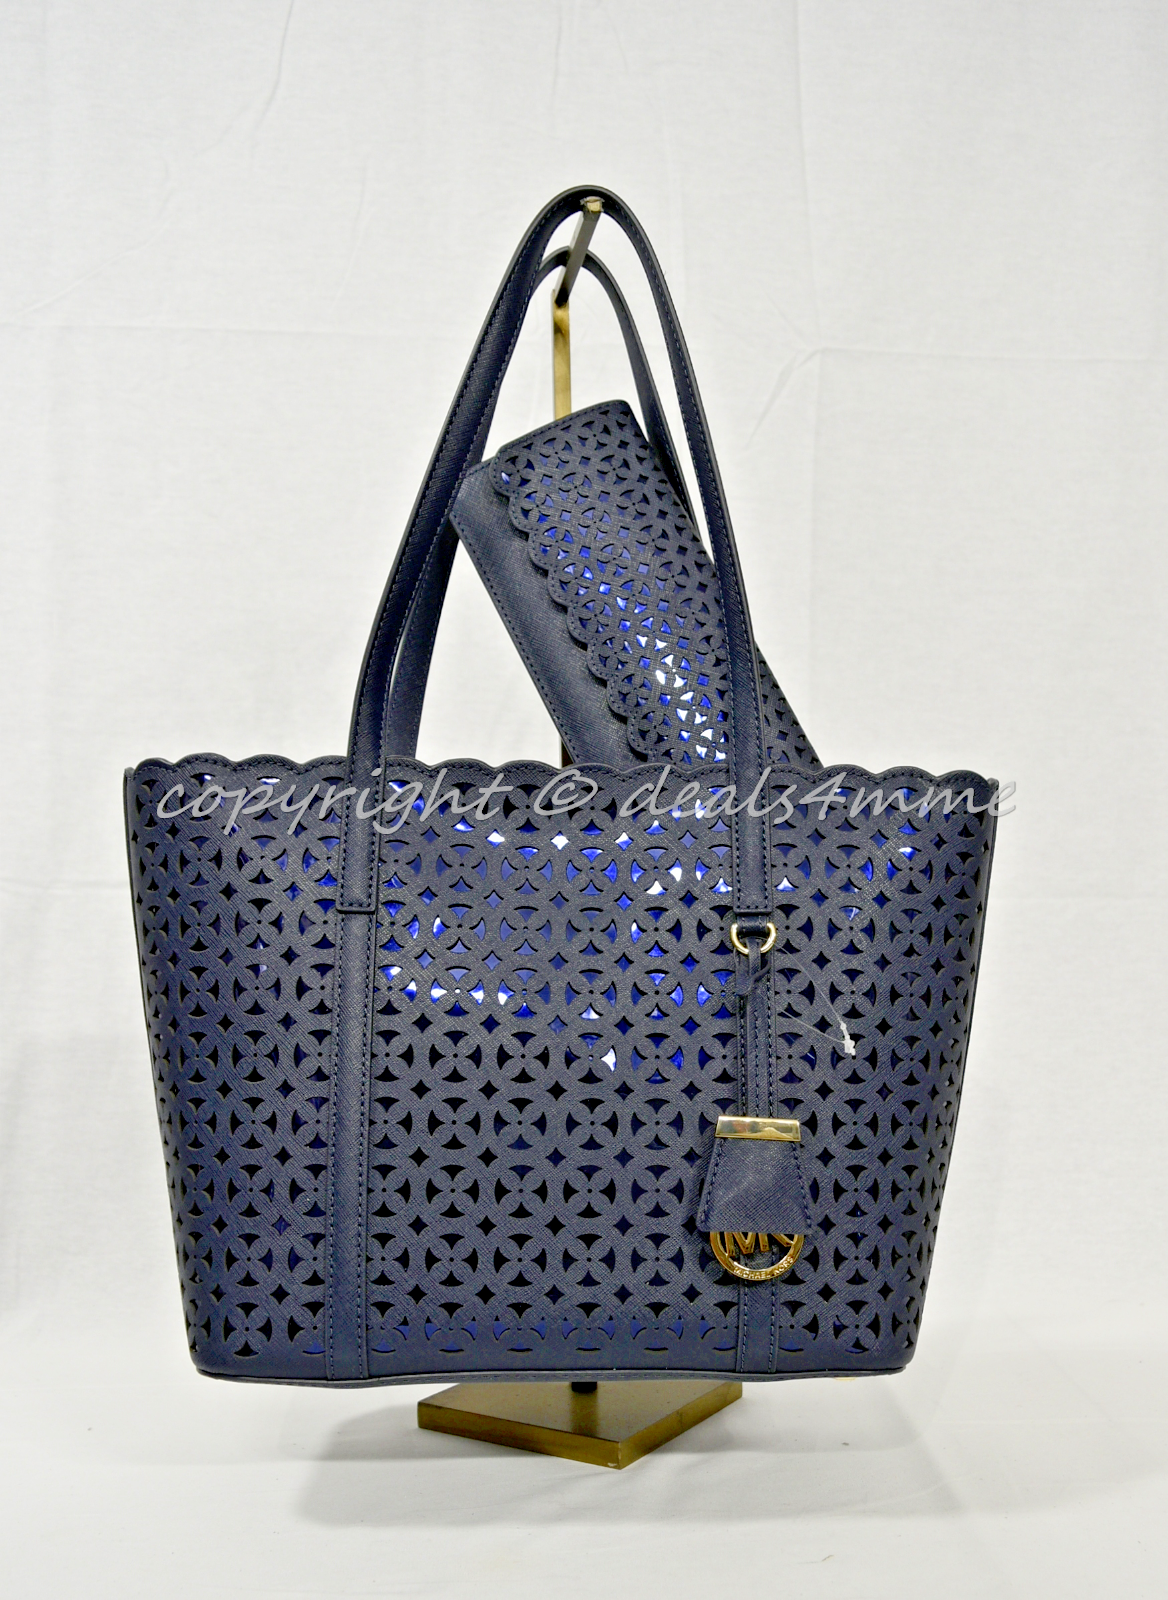 9c8ce8a73094 NWT Michael Kors Desi Small Leather Travel Tote OR Michael Kors Desi Flat  Wallet 3 3 of 3 See More